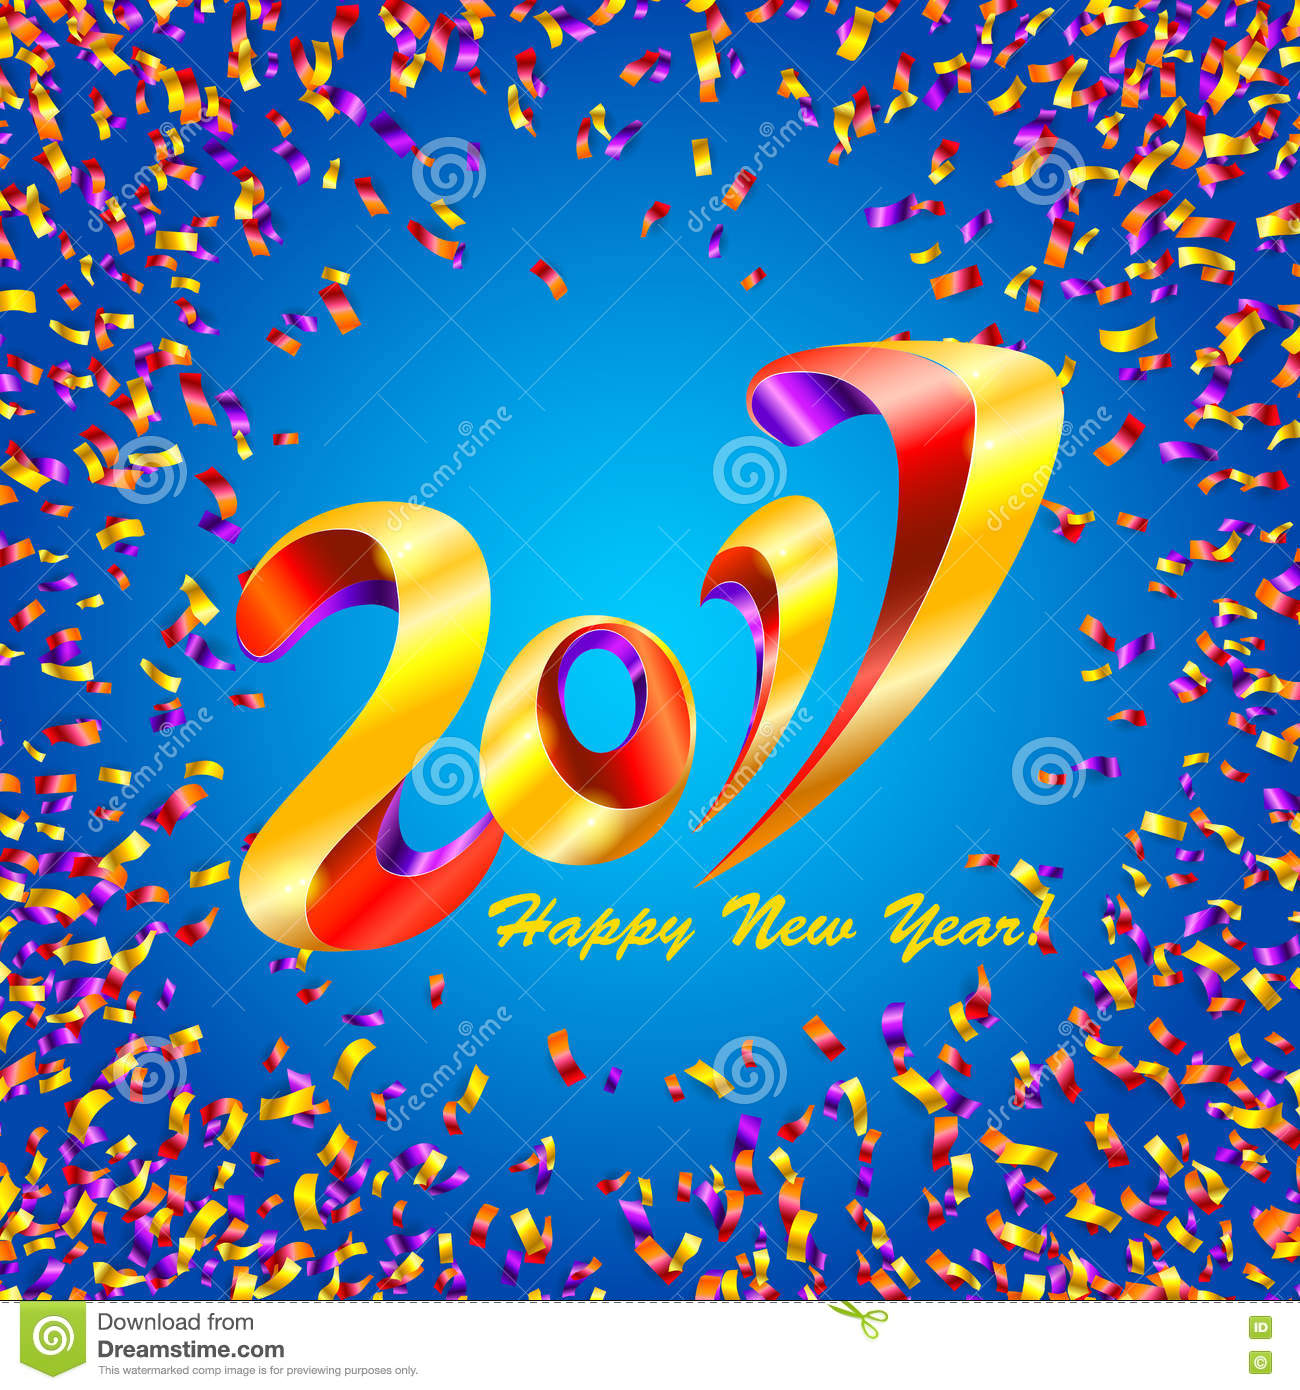 New Year 2017 Celebration Background With Confetti Cartoon 1300x1390